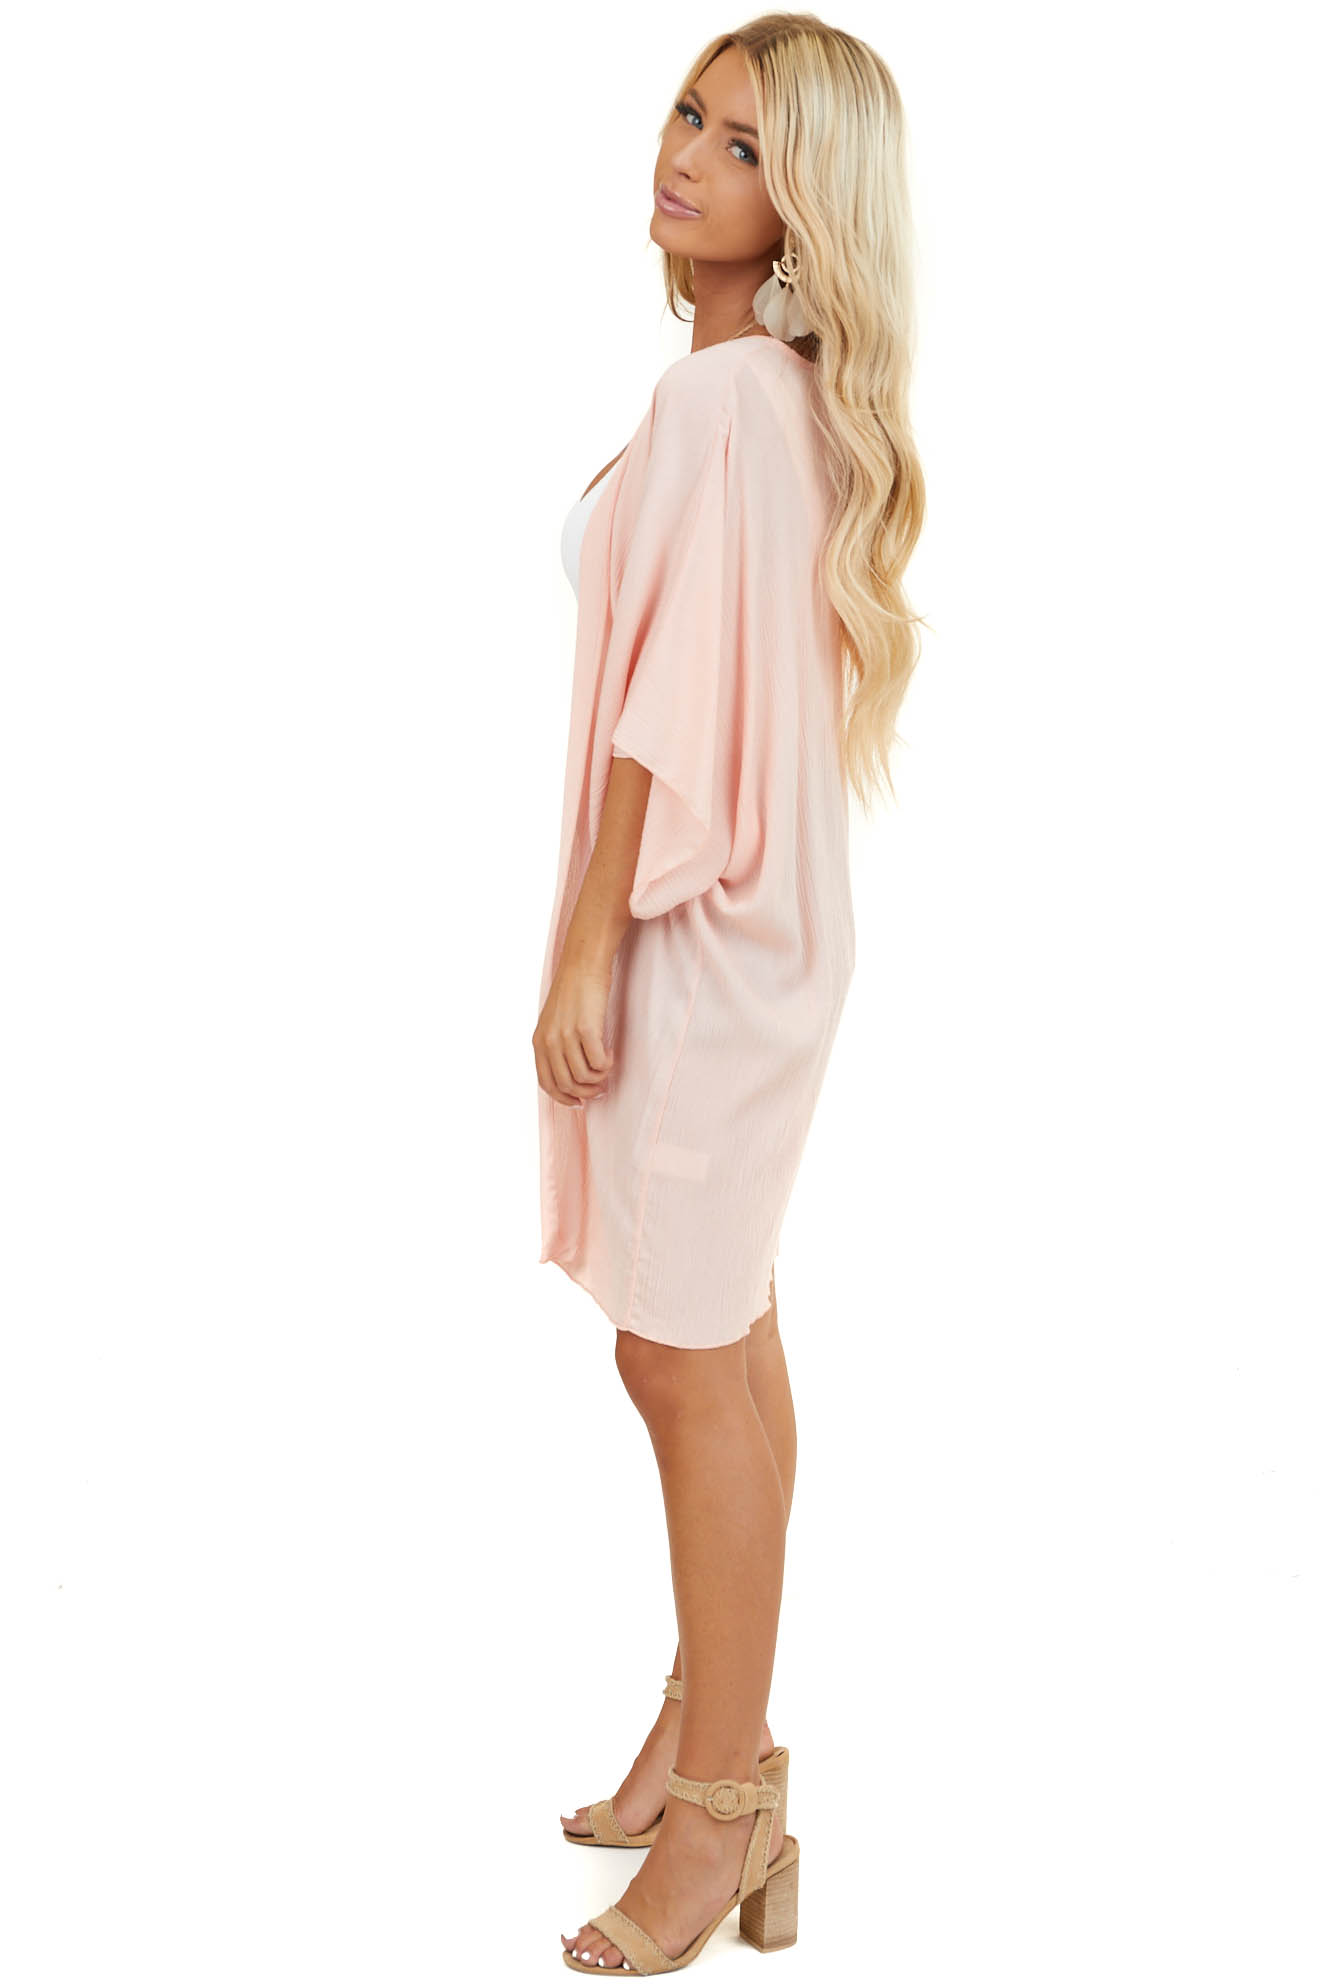 Blush Open Front Cardigan with 3/4 Length Dolman Sleeves